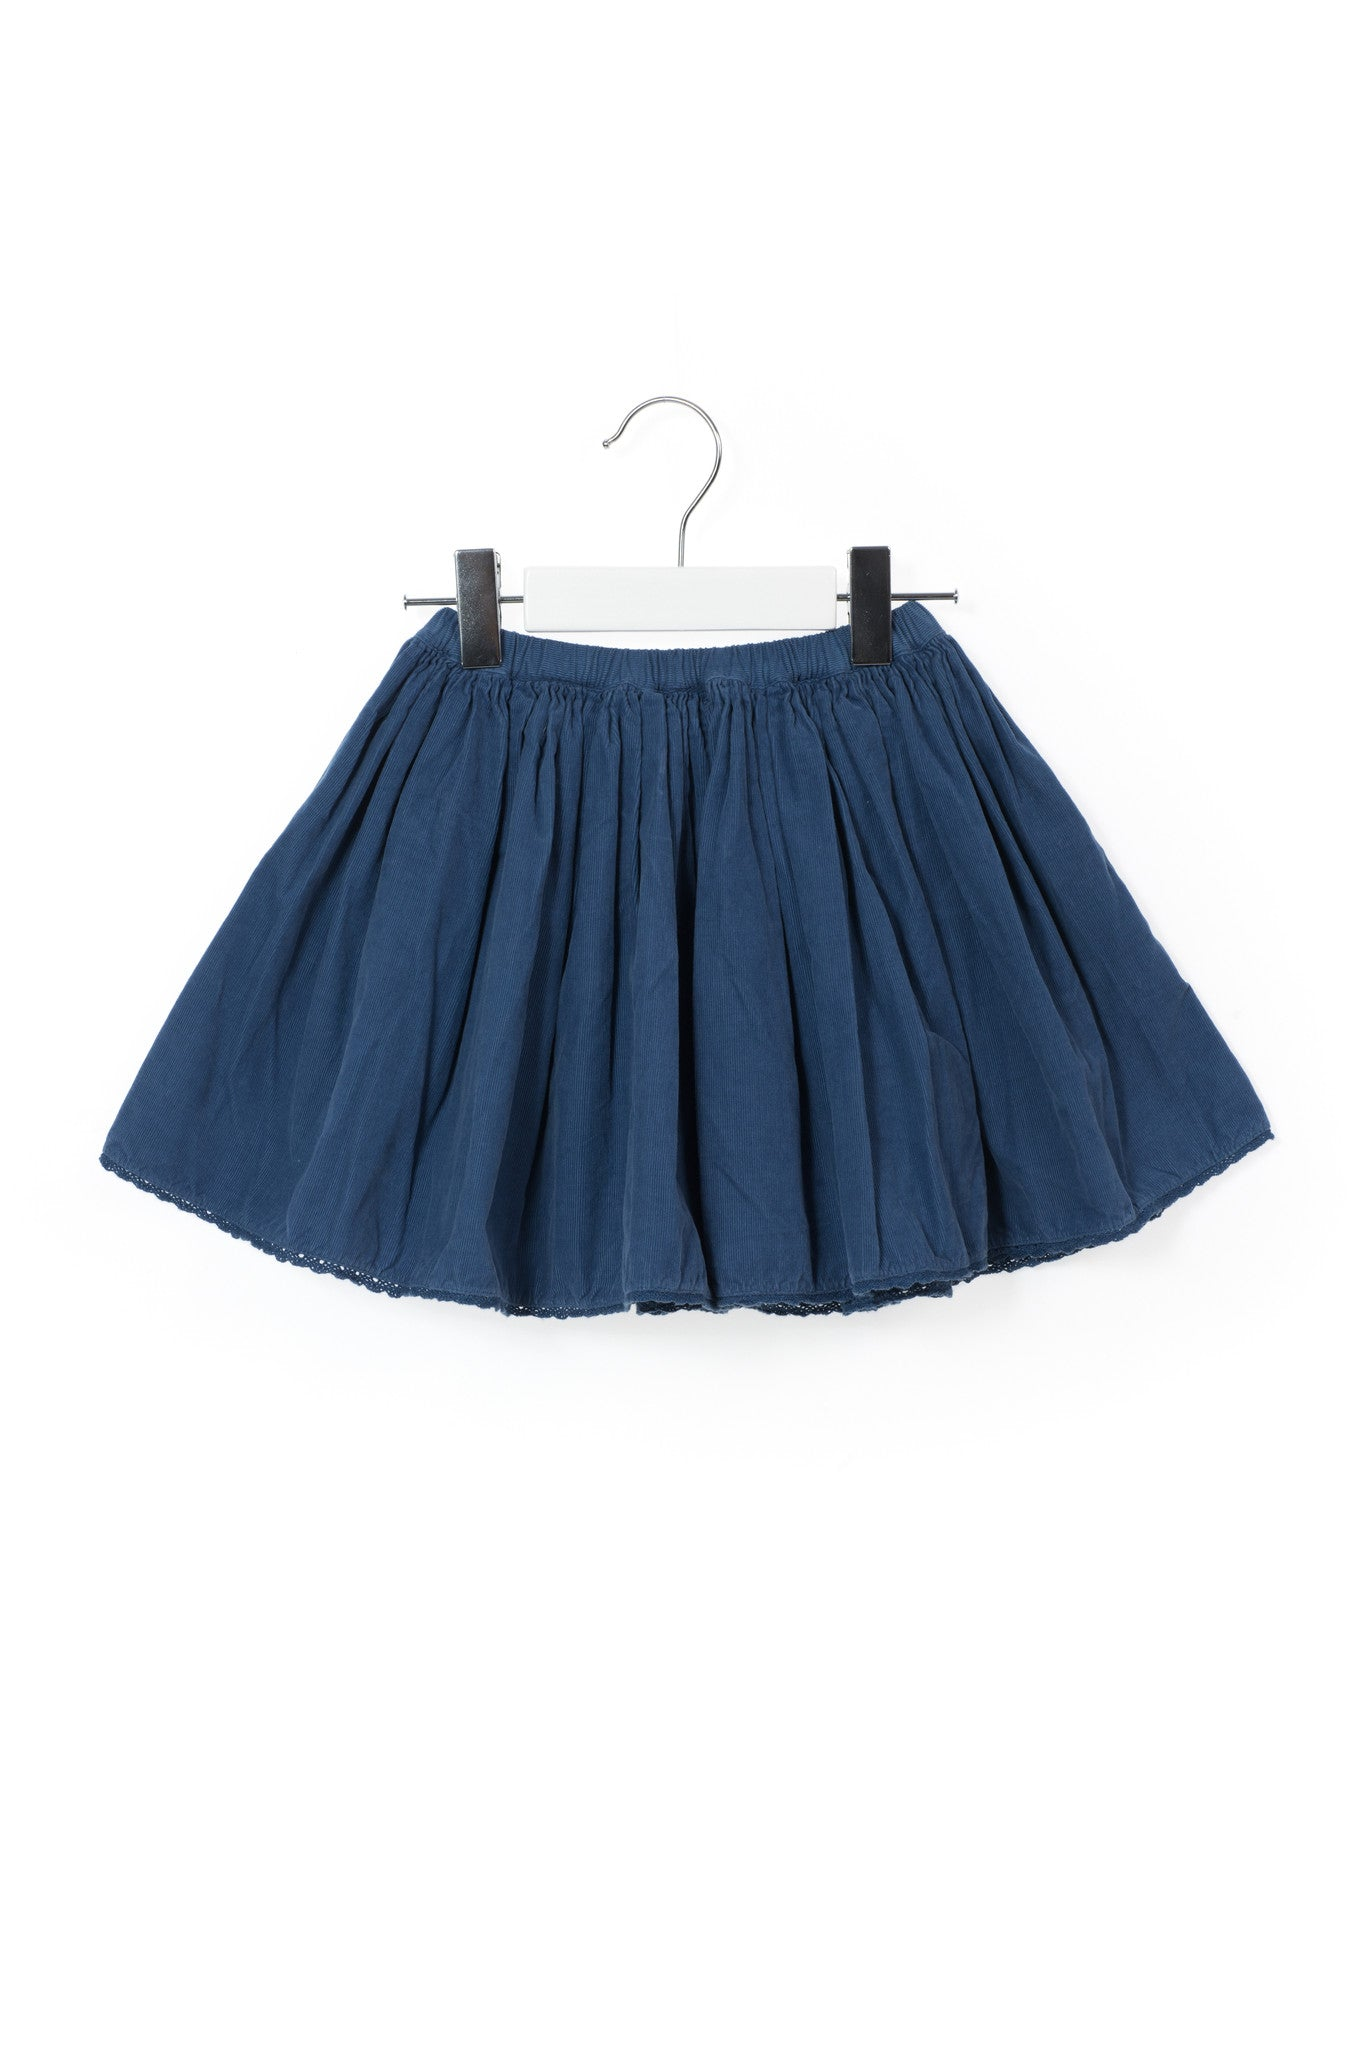 10001077 Bonton Kids~Skirt 6T at Retykle